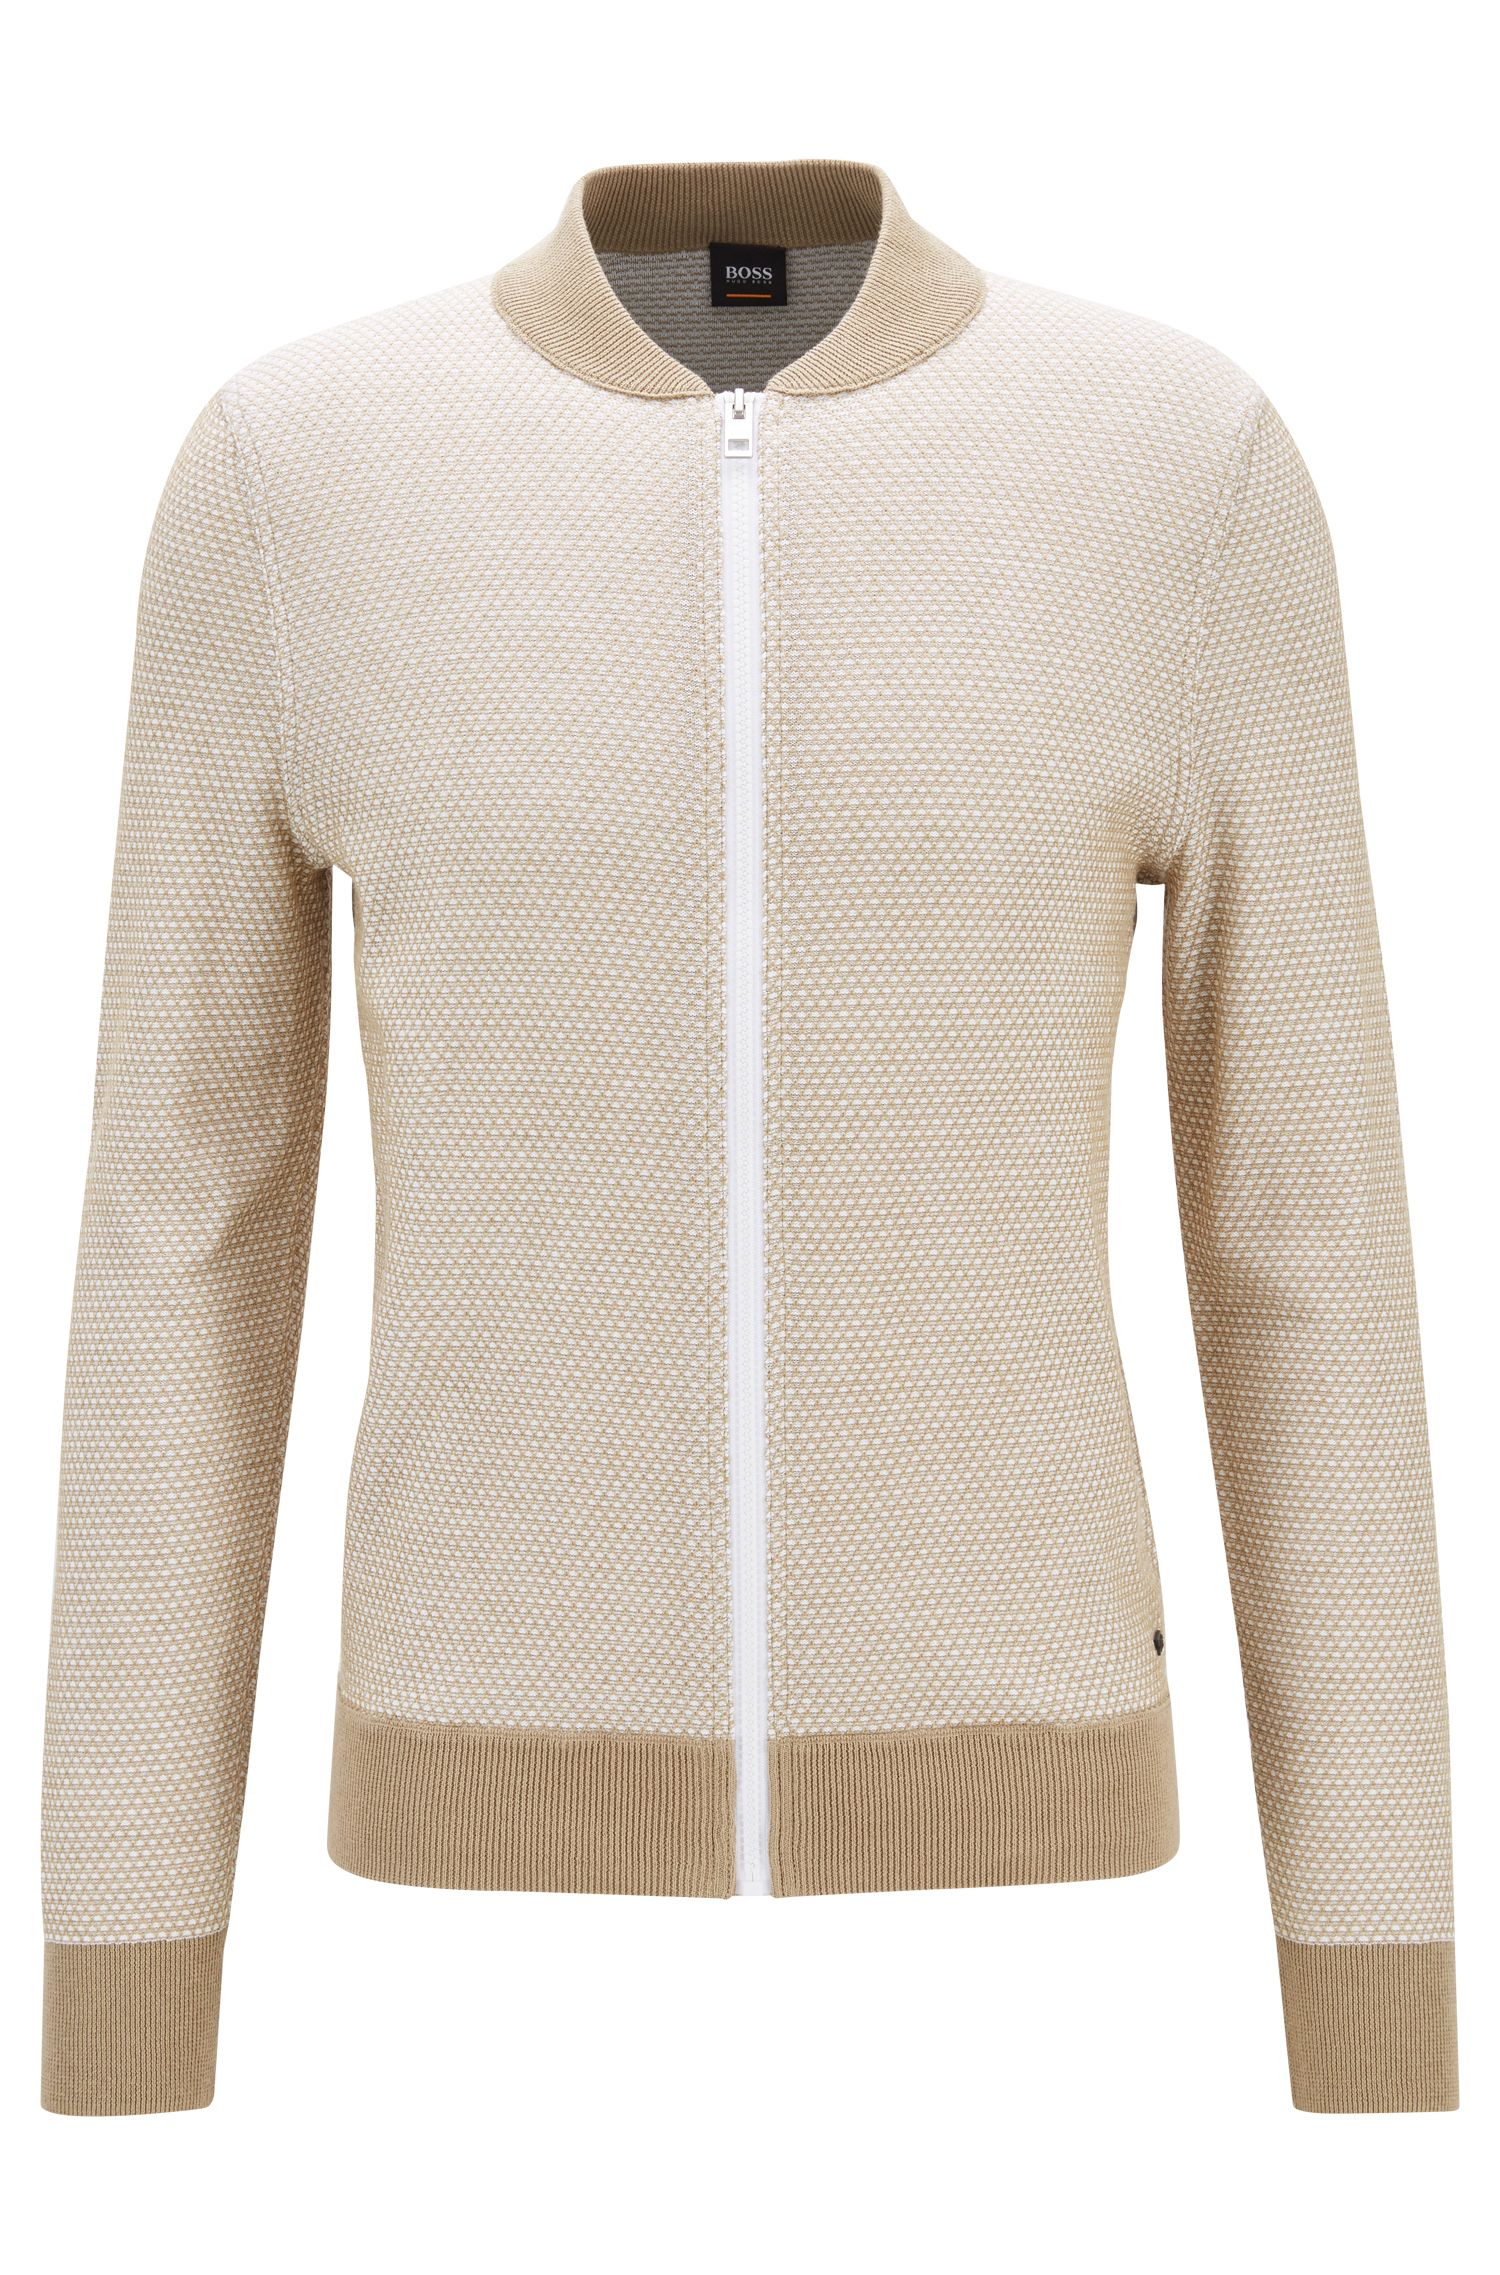 Two-tone knitted jacket in cotton and silk, Beige